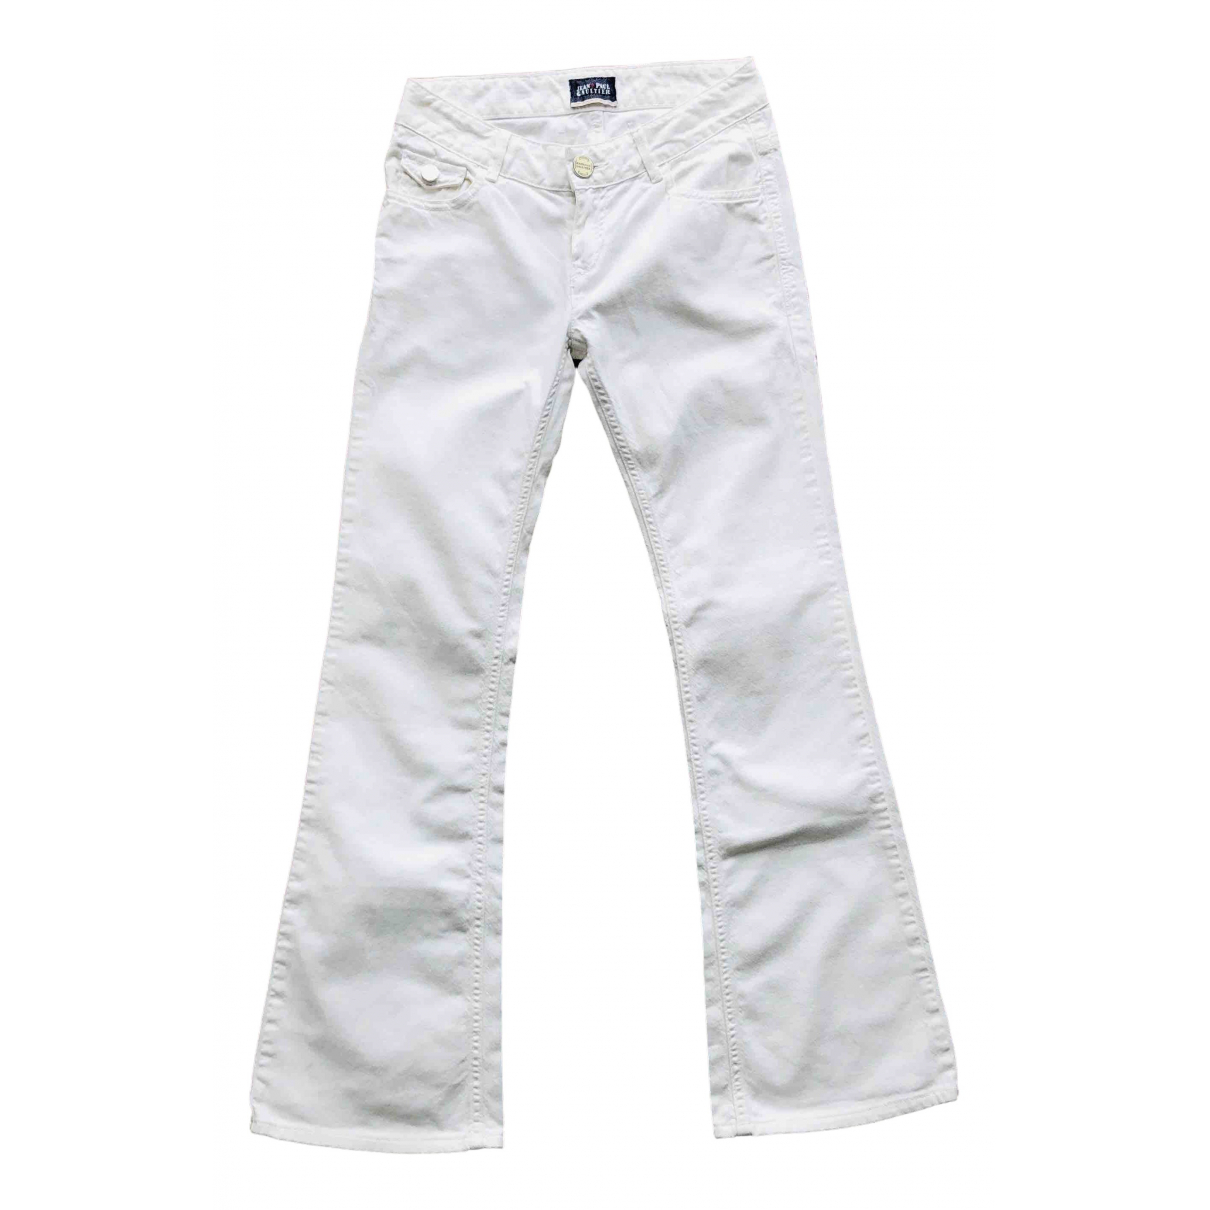 Jean Paul Gaultier \N White Cotton Jeans for Women 35 FR